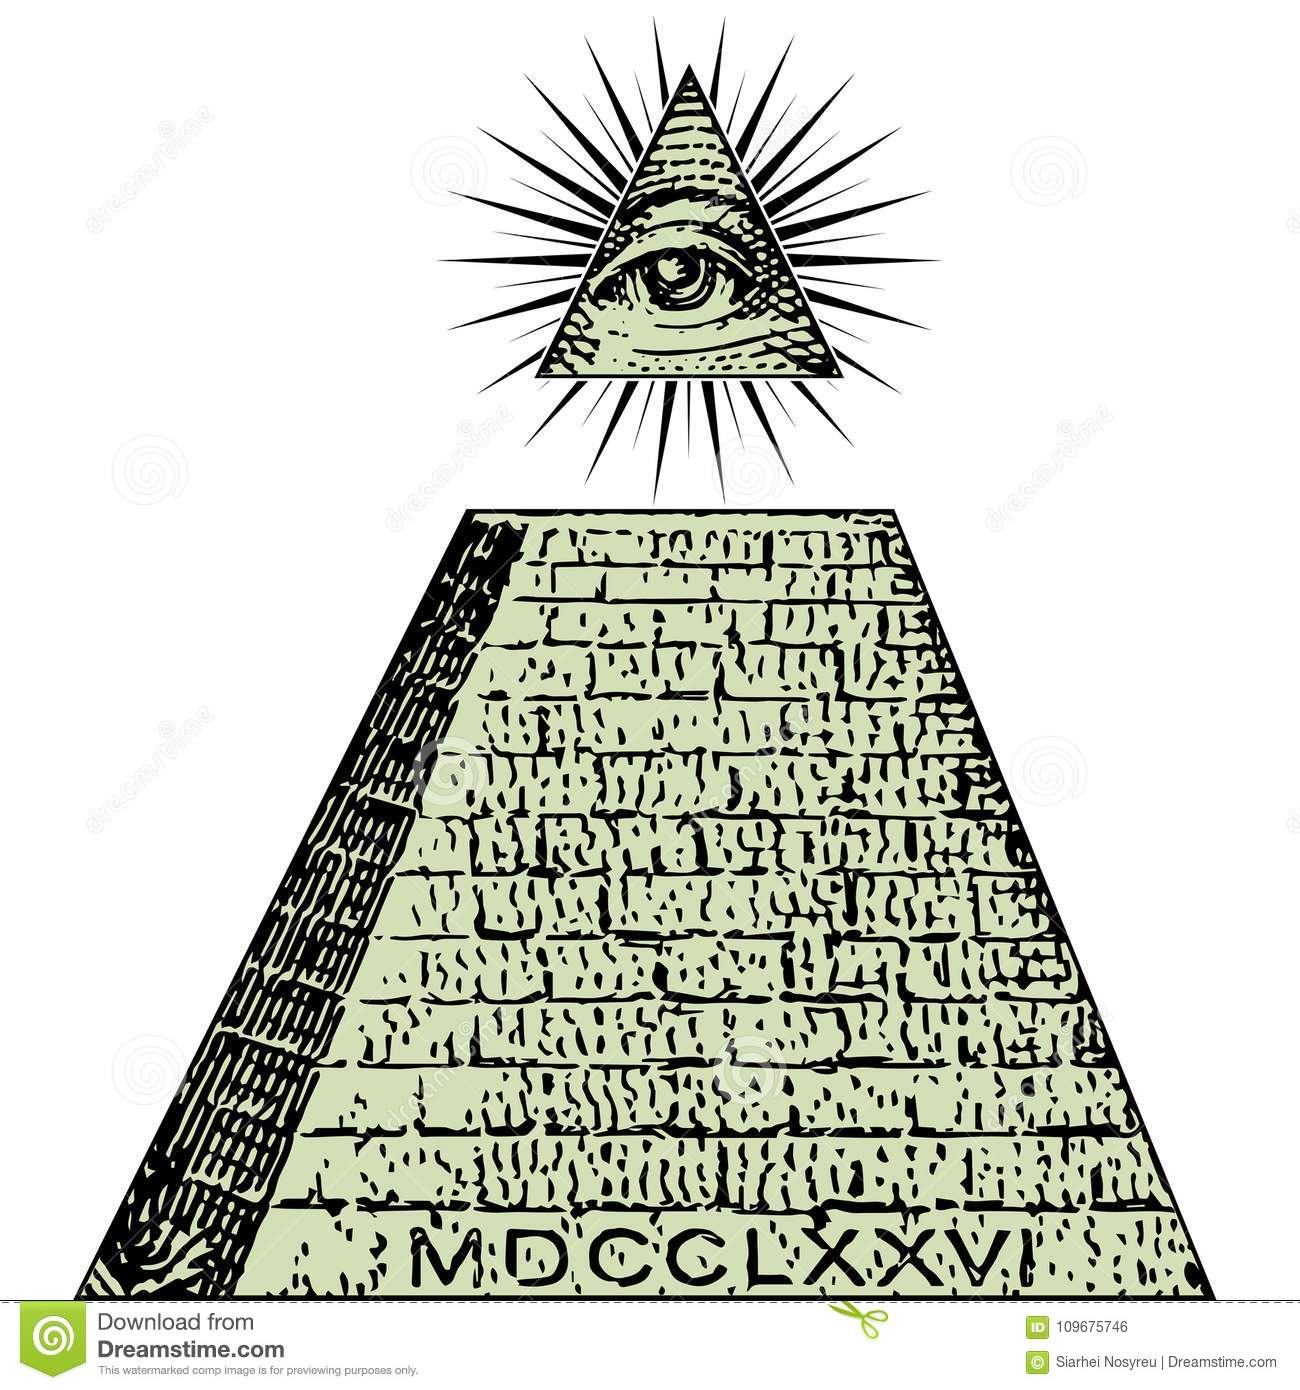 New World Order One Dollar Pyramid Illuminati Symbols Bill